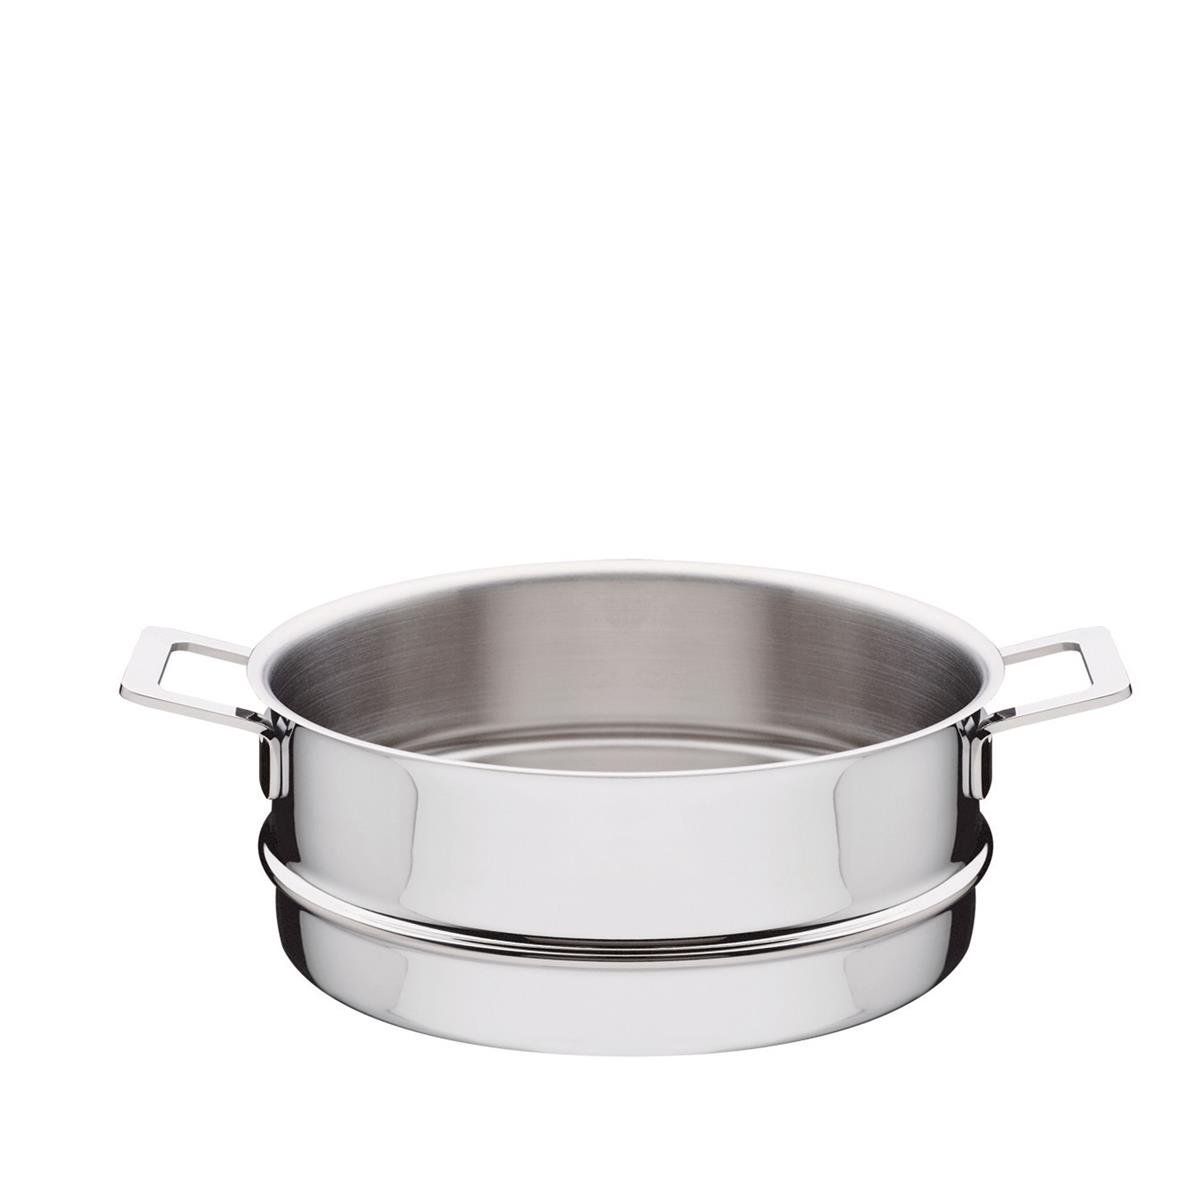 Alessi-Pots & Pans Steamer basket in 18/10 stainless steel mirror polished